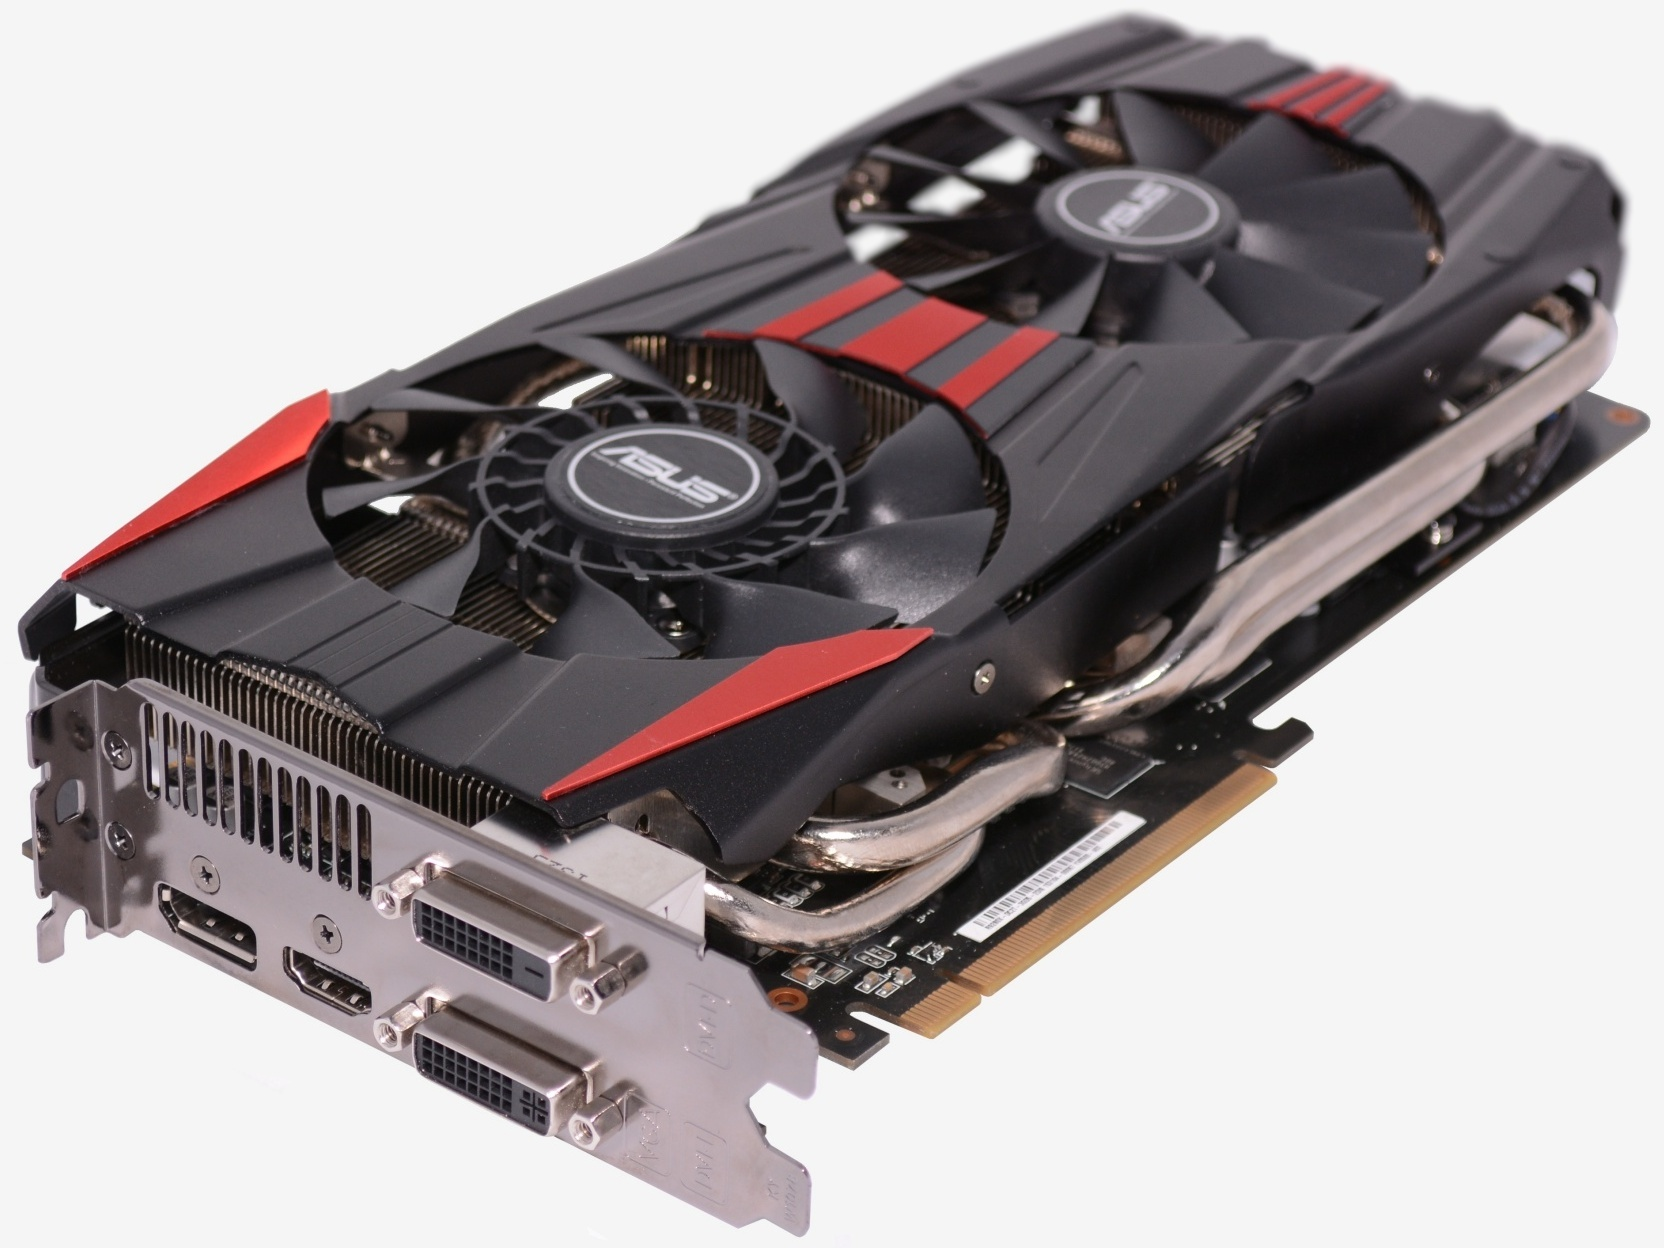 Roundup: 5-way Radeon R9 280X Battle > Asus R9 280X DirectCU